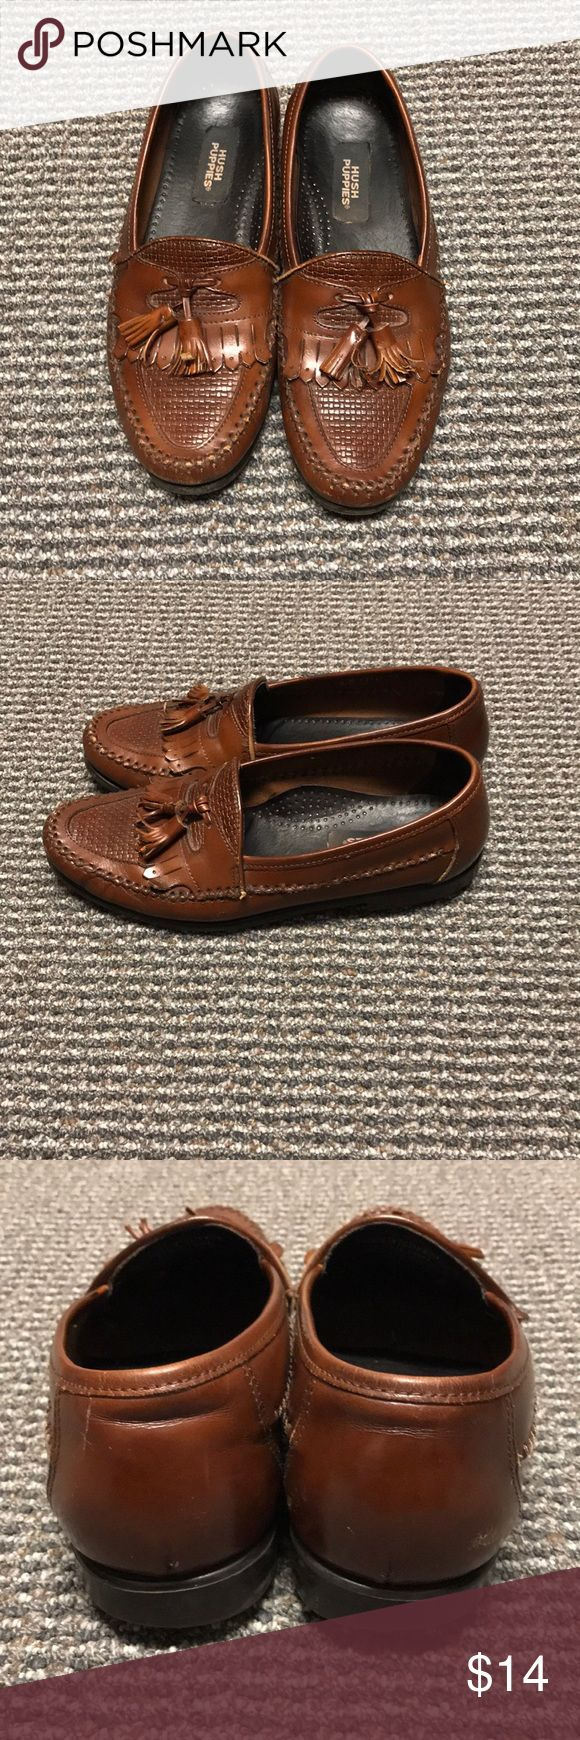 Hush Puppies Men's Loafers with tassels -good condition  -signs of wear and marking (shown in pictures) -size 8.5 Hush Puppies Shoes Loafers & Slip-Ons